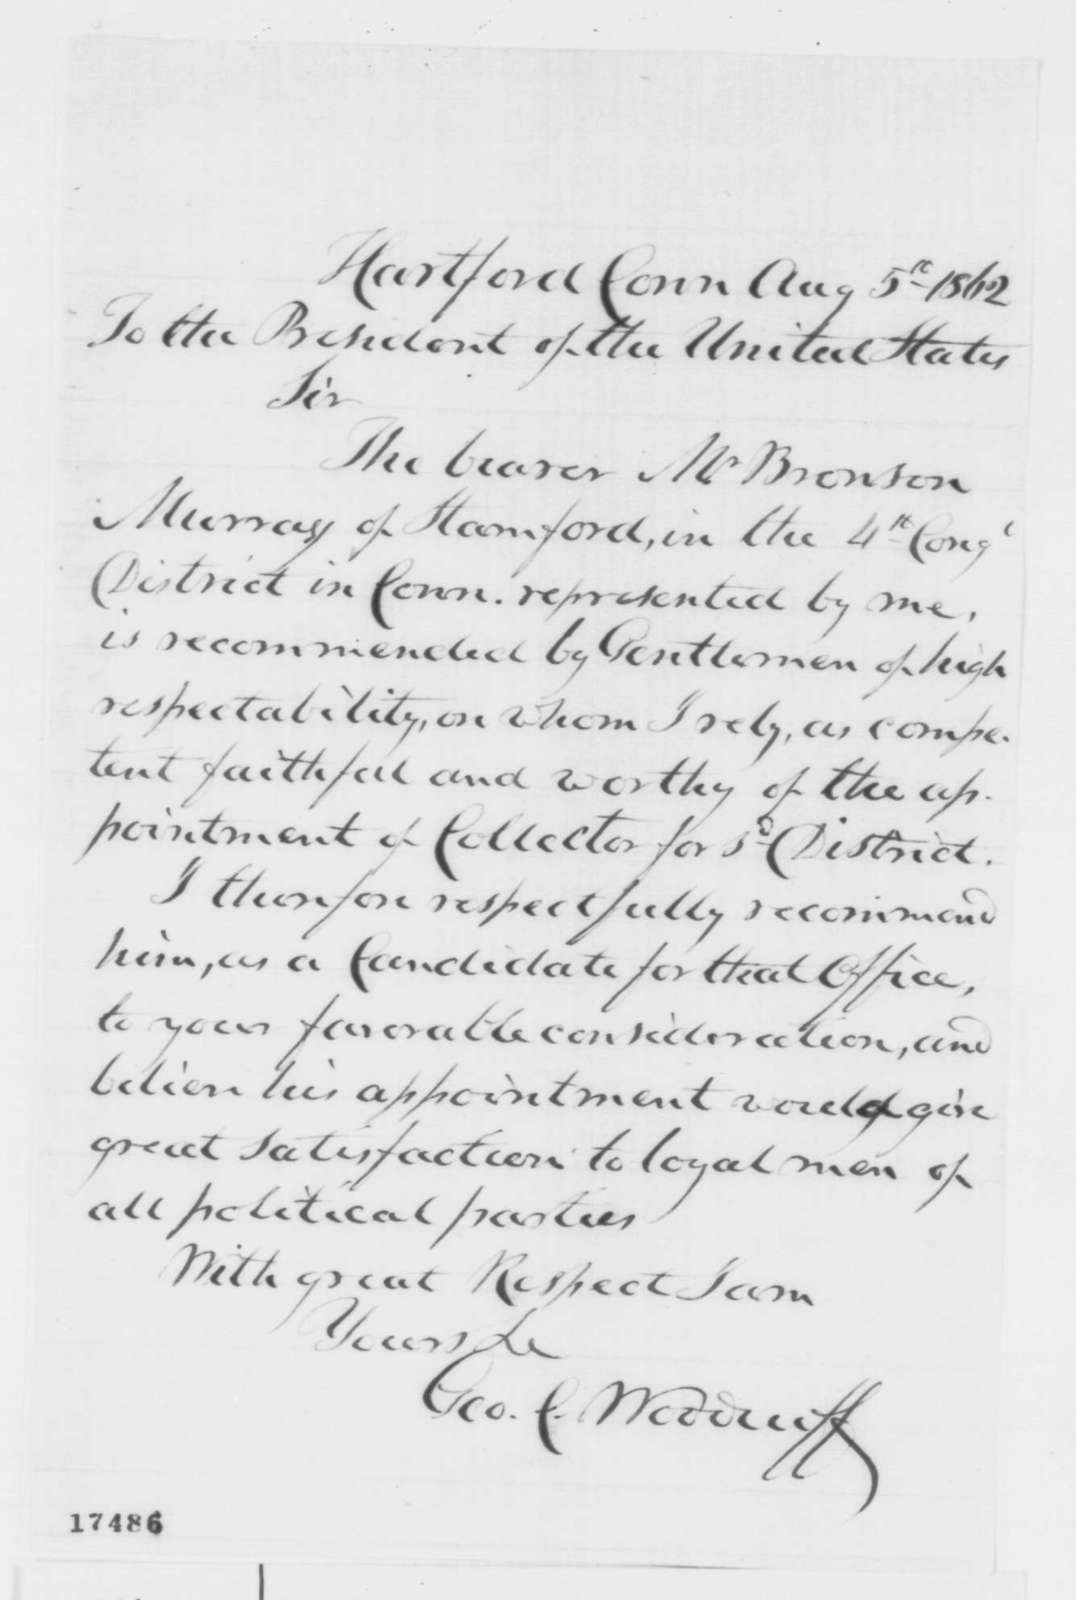 George C. Woodruff to Abraham Lincoln, Tuesday, August 05, 1862  (Recommendation)